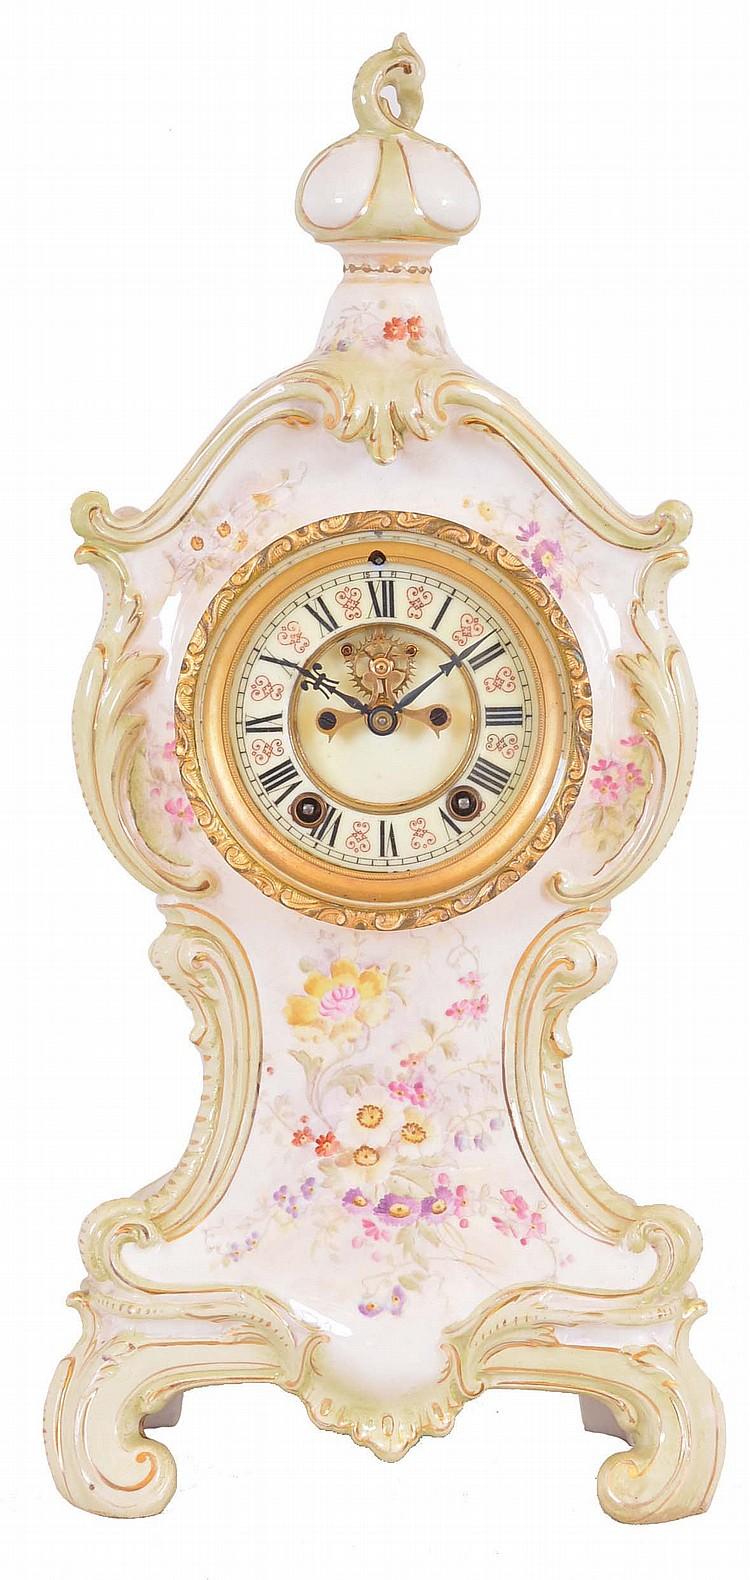 Ansonia Clock Co., New York, NY, 8 day, time and strike spring brass movement porcelain mantel clock.